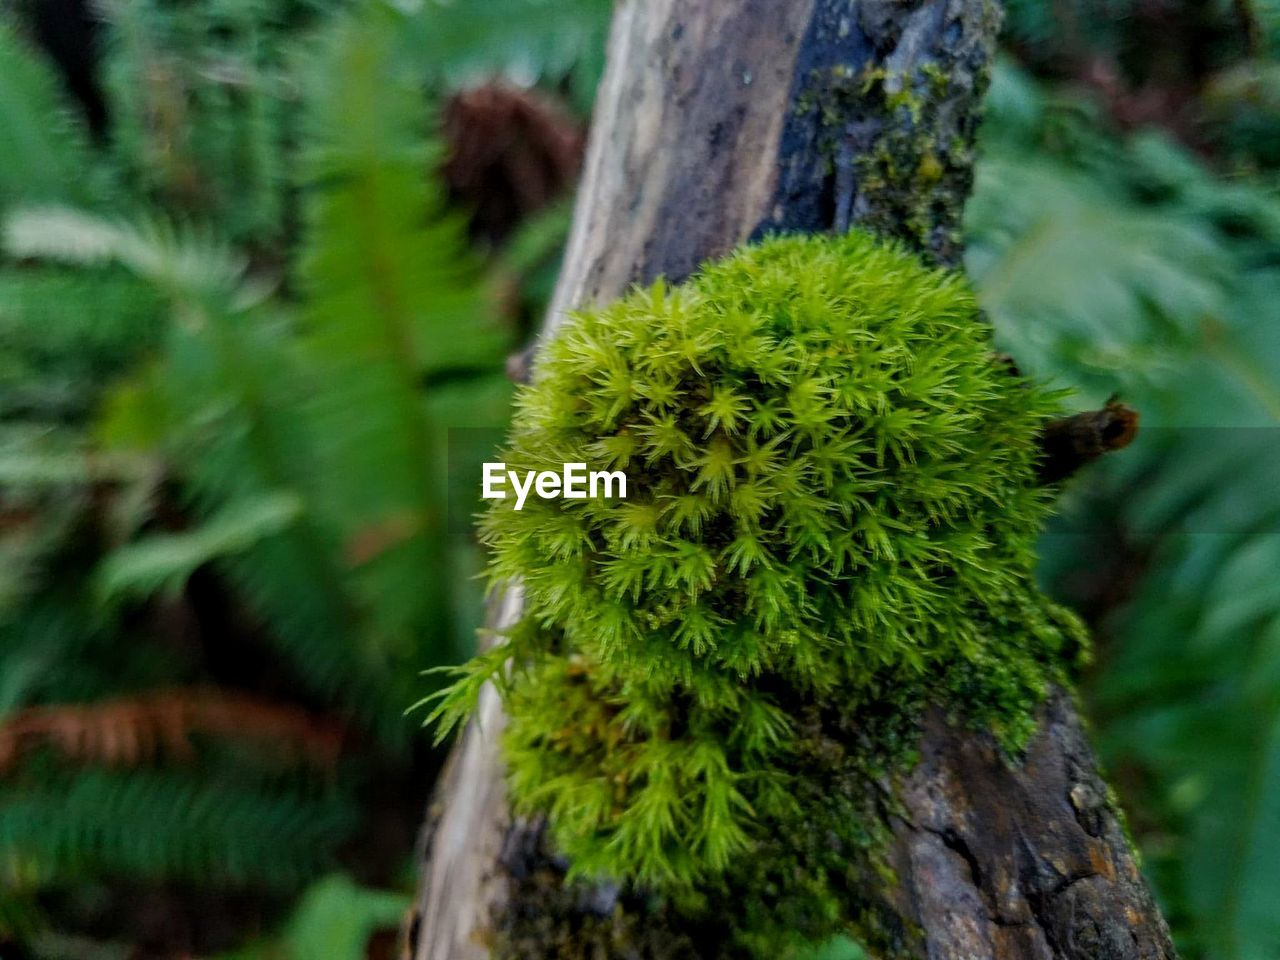 nature, growth, green color, plant, cactus, focus on foreground, day, outdoors, no people, beauty in nature, spiked, tree trunk, close-up, tree, flower, prickly pear cactus, freshness